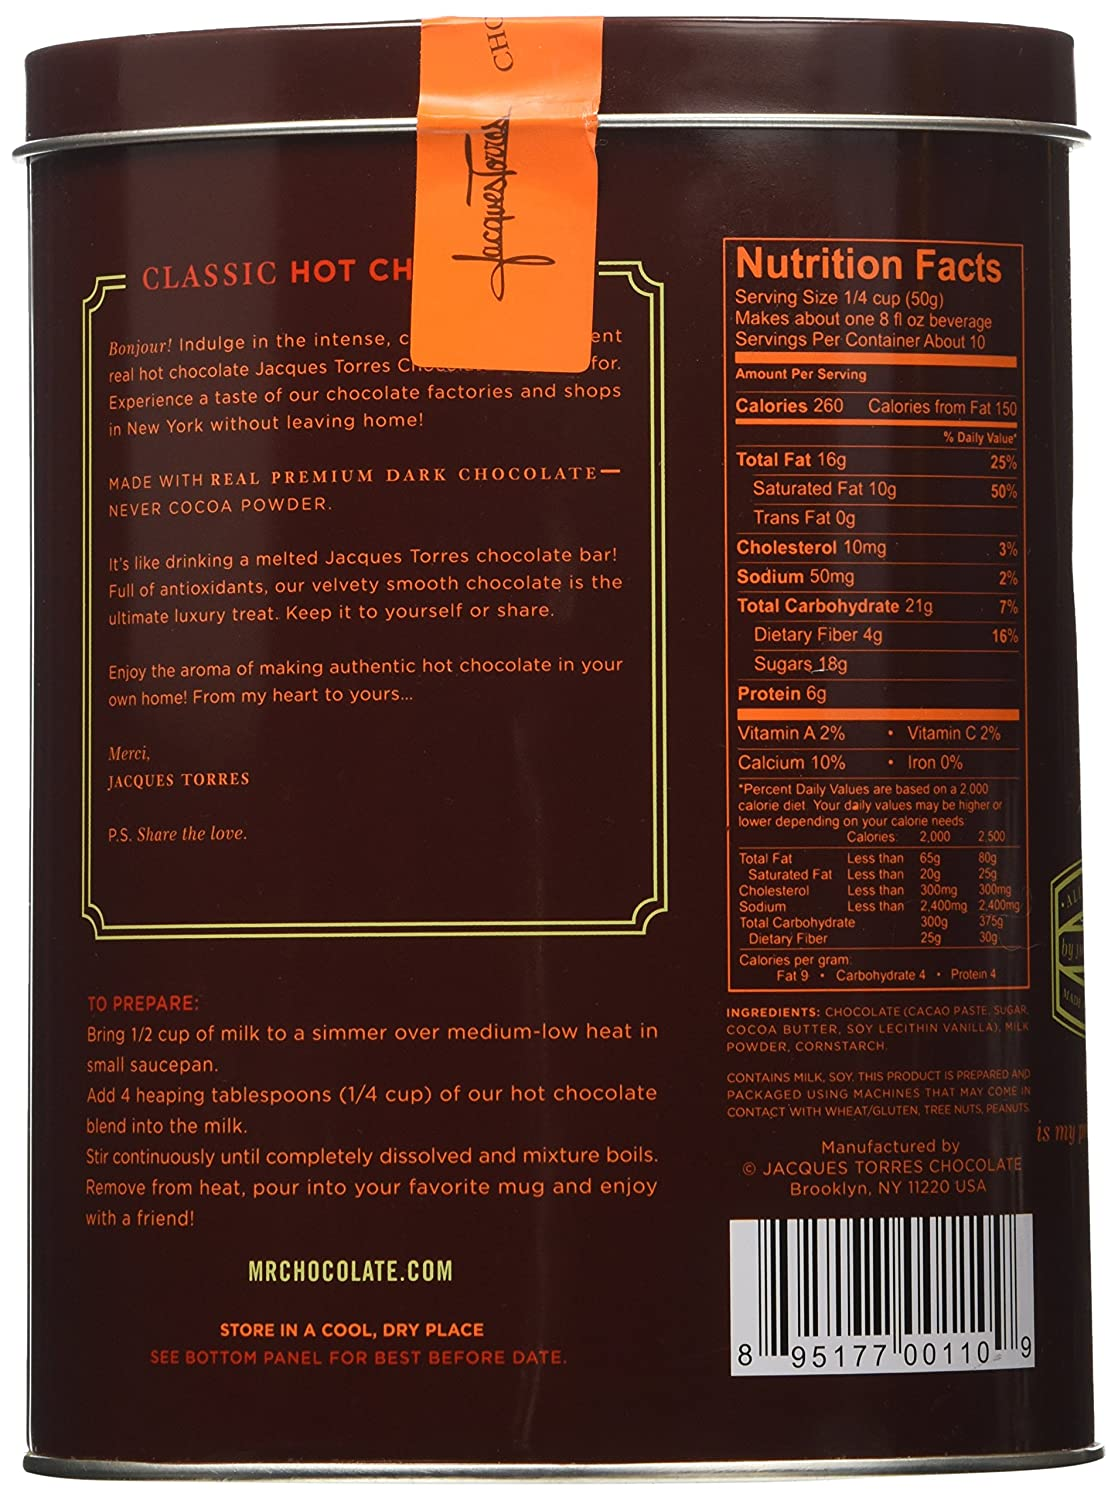 Amazon.com : Jacques Torres Chocolate - Hot Chocolate in a Tin Box ...